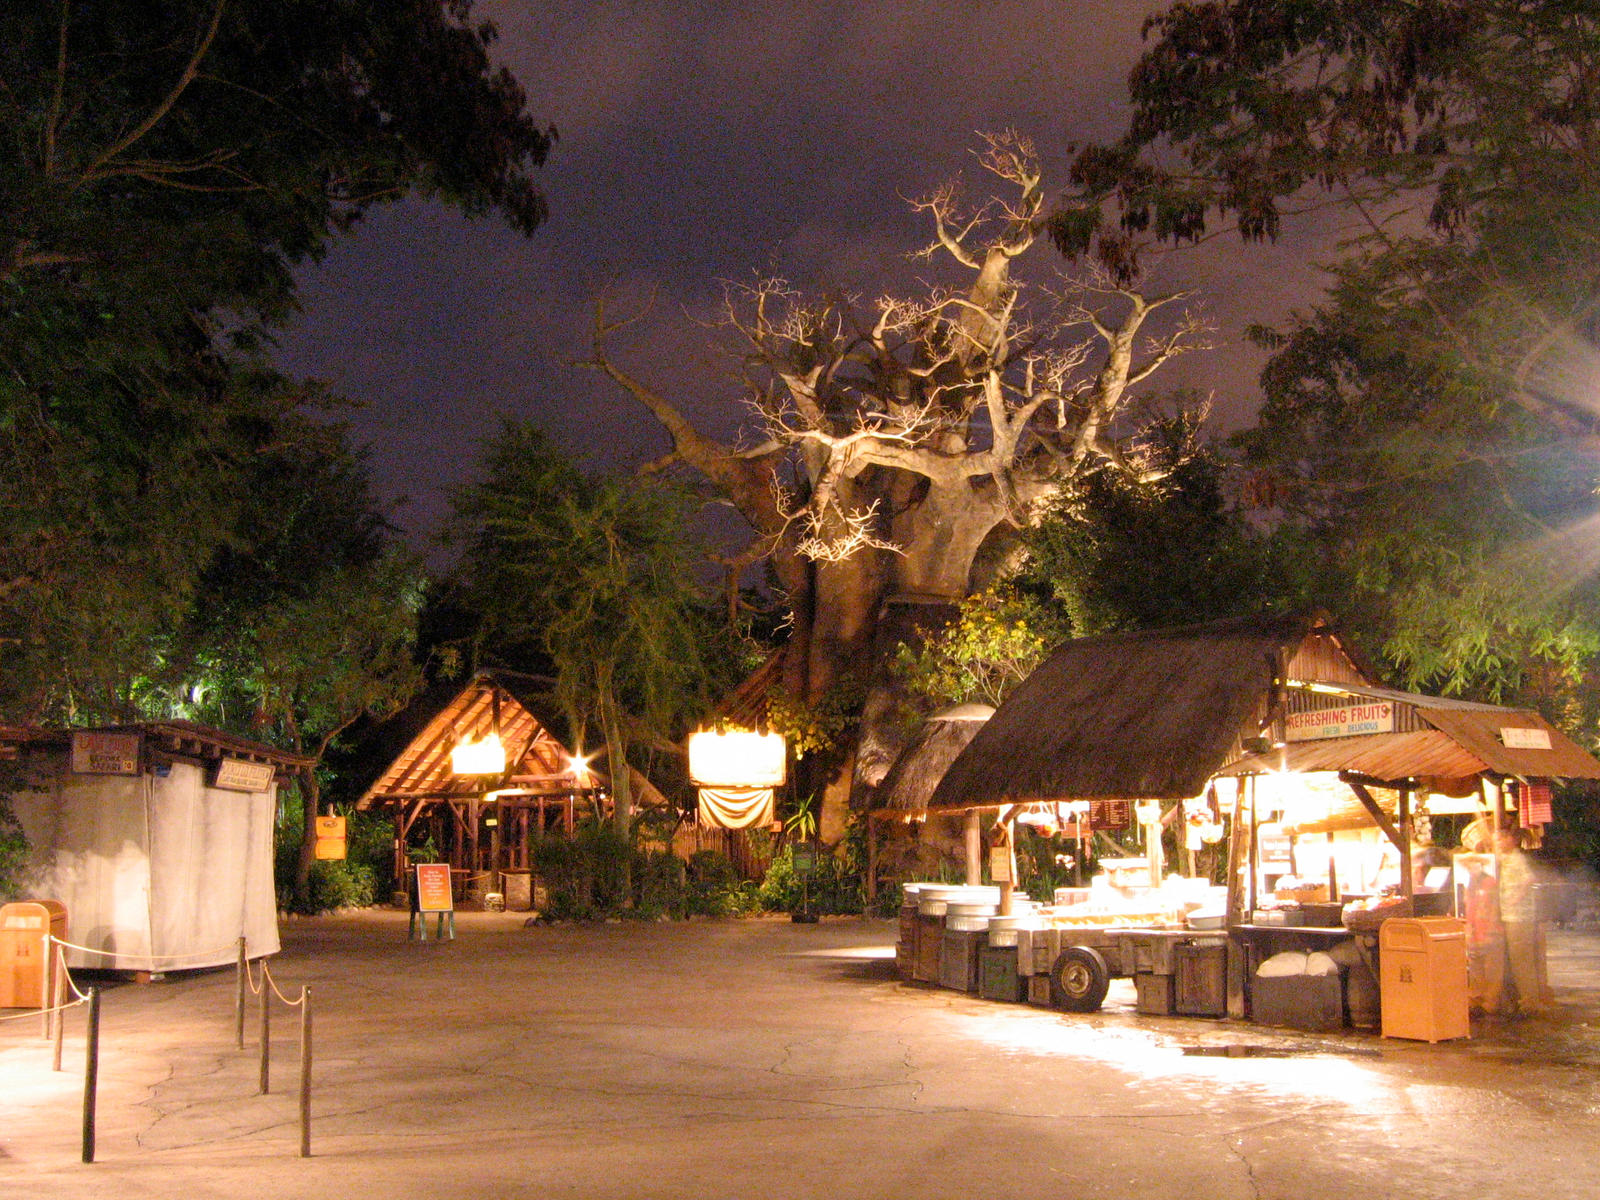 Animal Kingdom at Night 39 by AreteStock